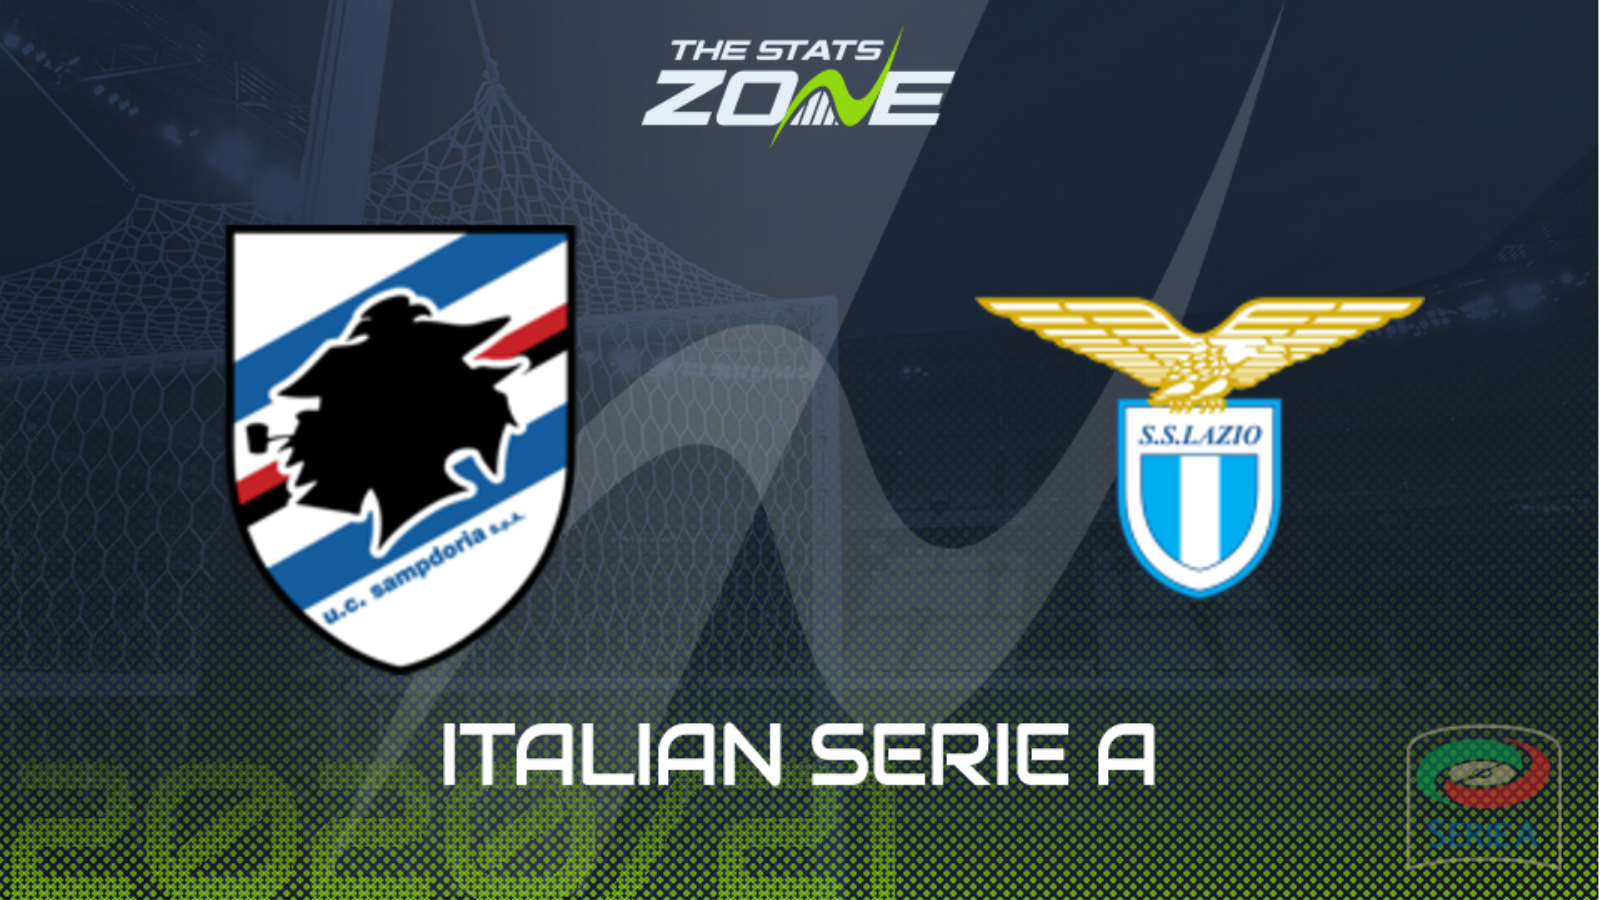 2020-21 Serie A – Sampdoria vs Lazio Preview & Prediction - The Stats Zone